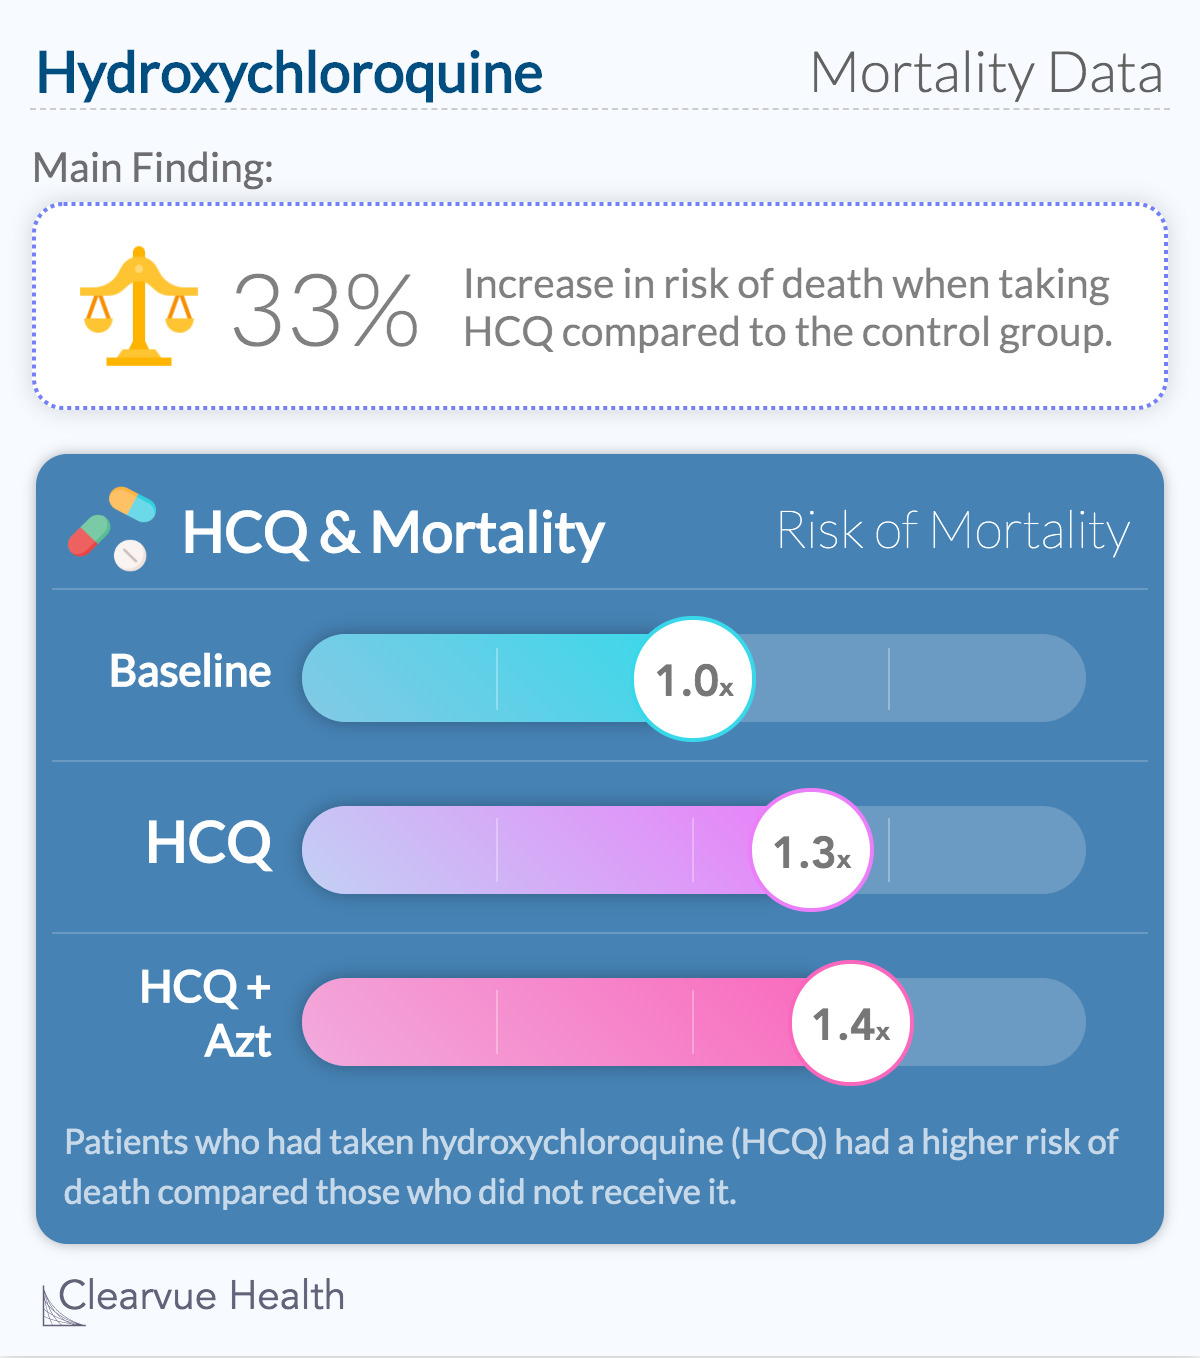 Hydroxychloroquine & Mortality Data from The Lancet